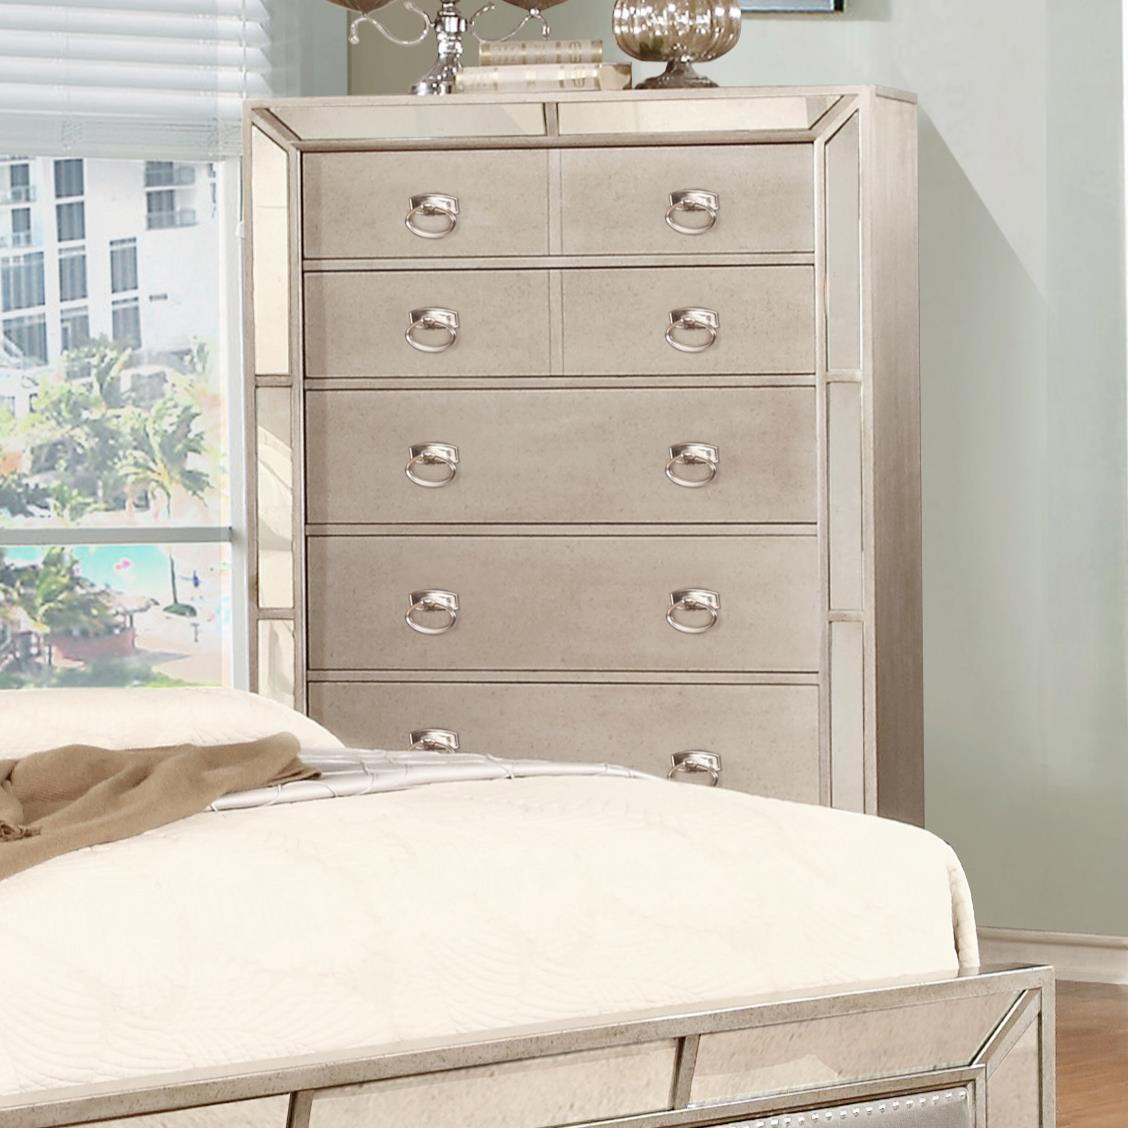 Lifestyle Glitzy Chest with 5 Drawers - Item Number: C5219A-035-5DXX